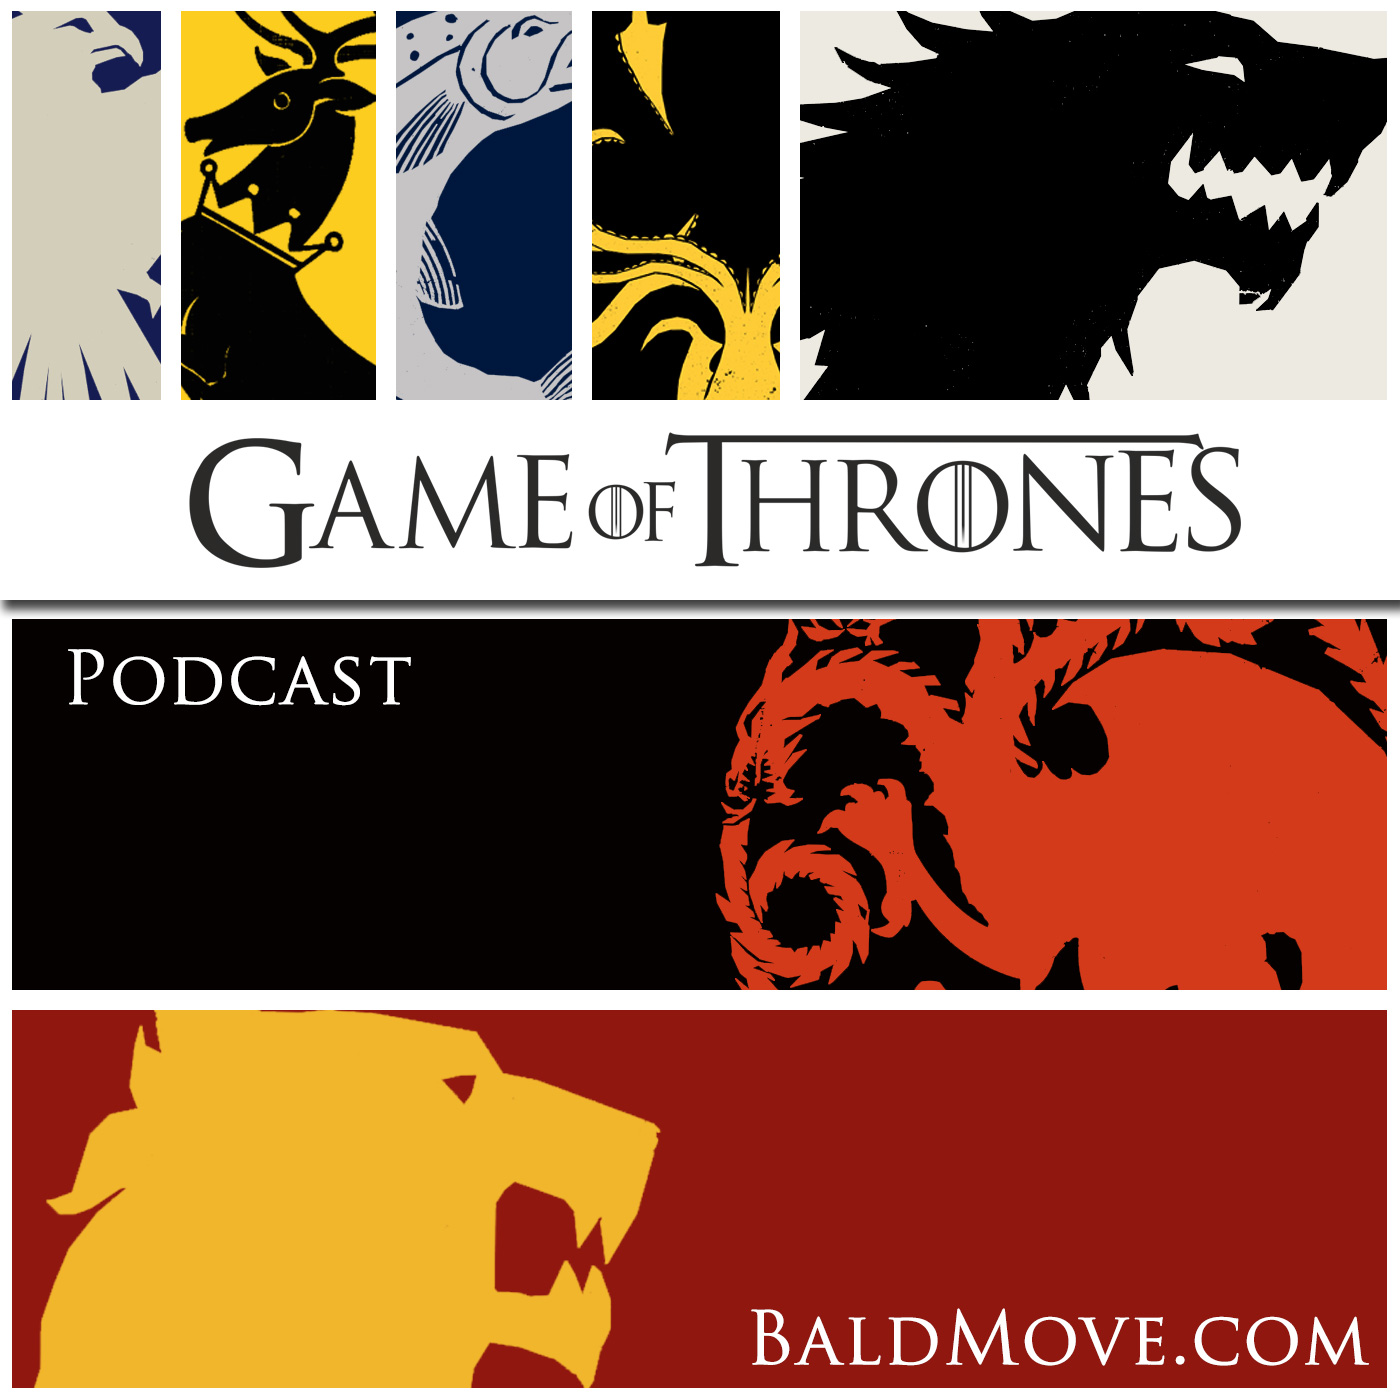 804 - The Last of the Starks - Instant Take